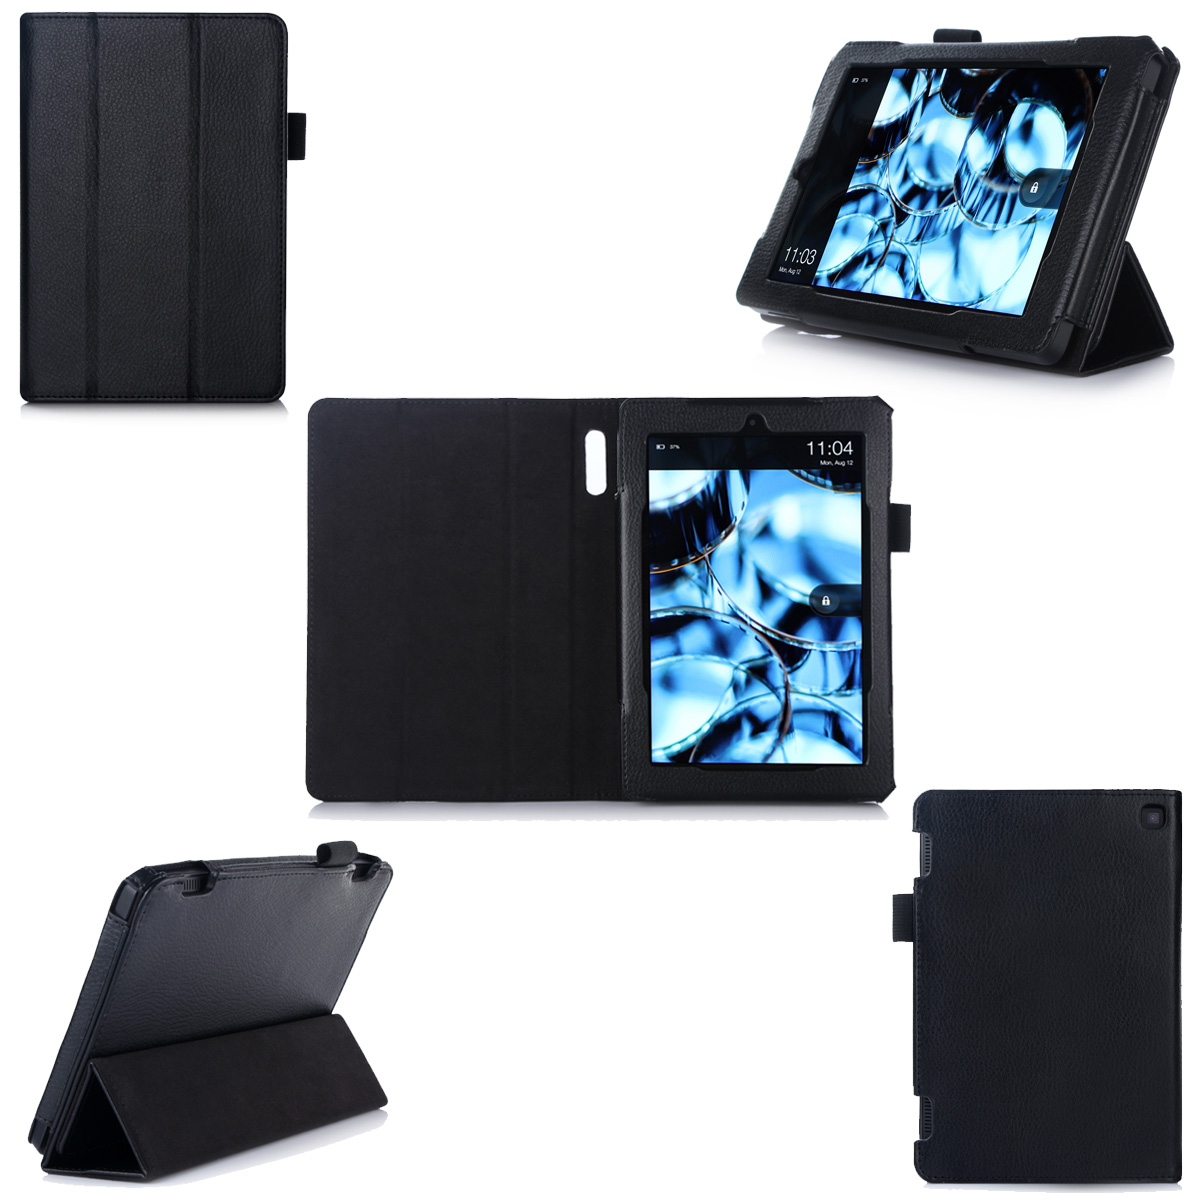 亚马逊 Kindle fire Hd 7 2014